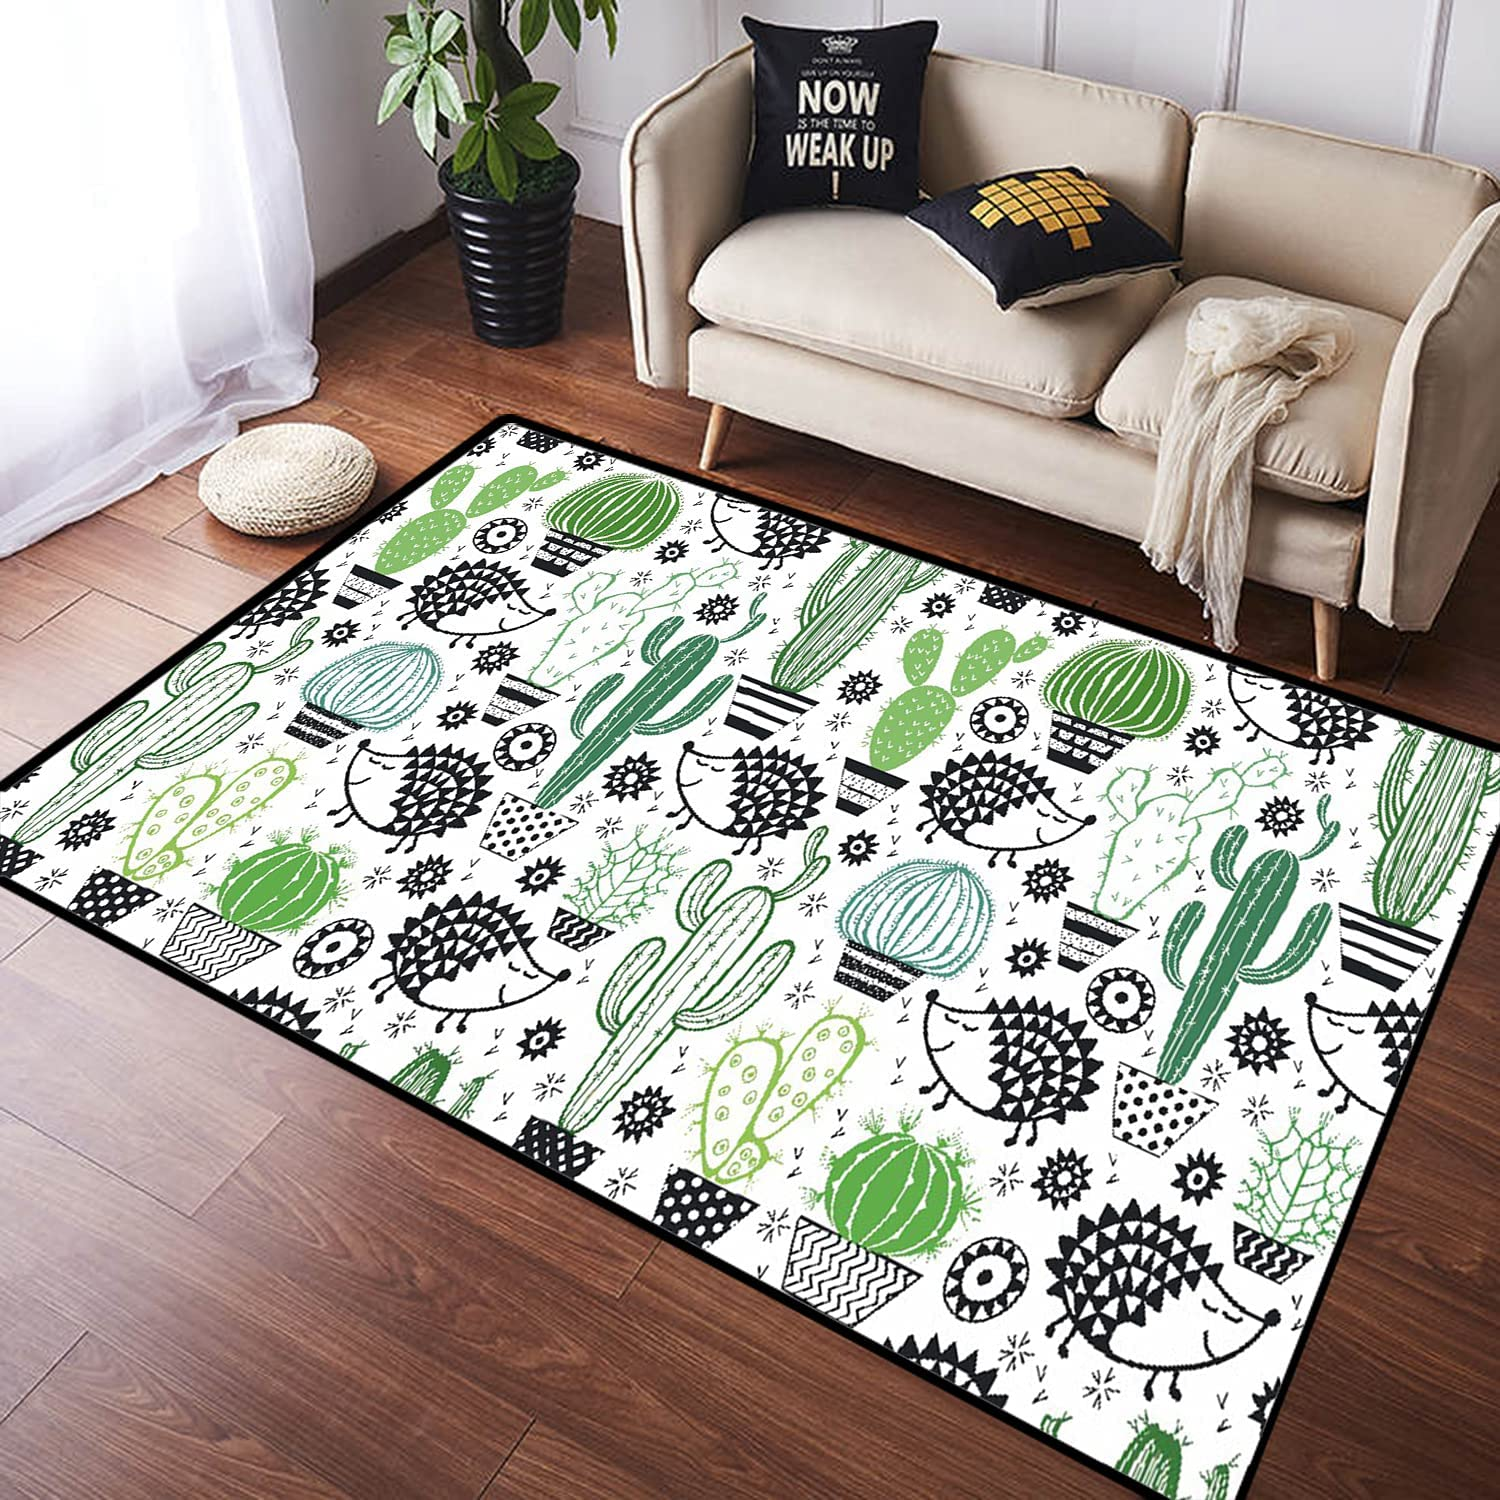 ZOMOY gift Long Floor Mat Carpet Floral Non-Sl Seamless with San Diego Mall Cactuses